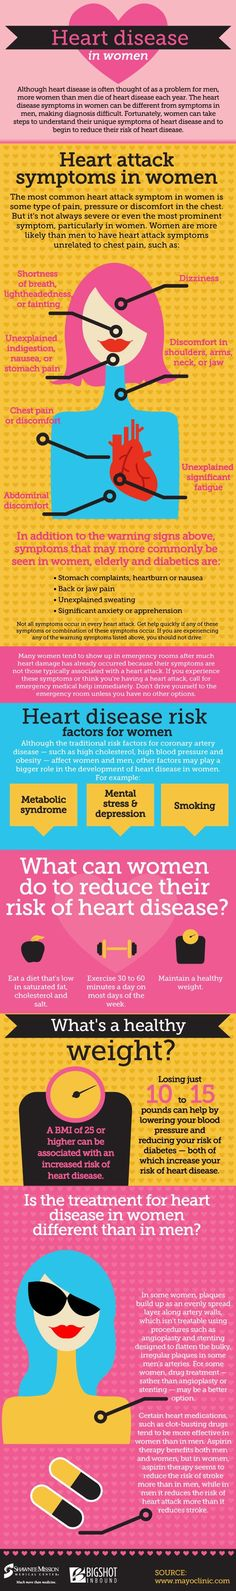 Take a look at this infographic to learn more about what women can do to prevent heart disease, as well as how to learn to recognize the symptoms, risk factors,and treatments for the condition.